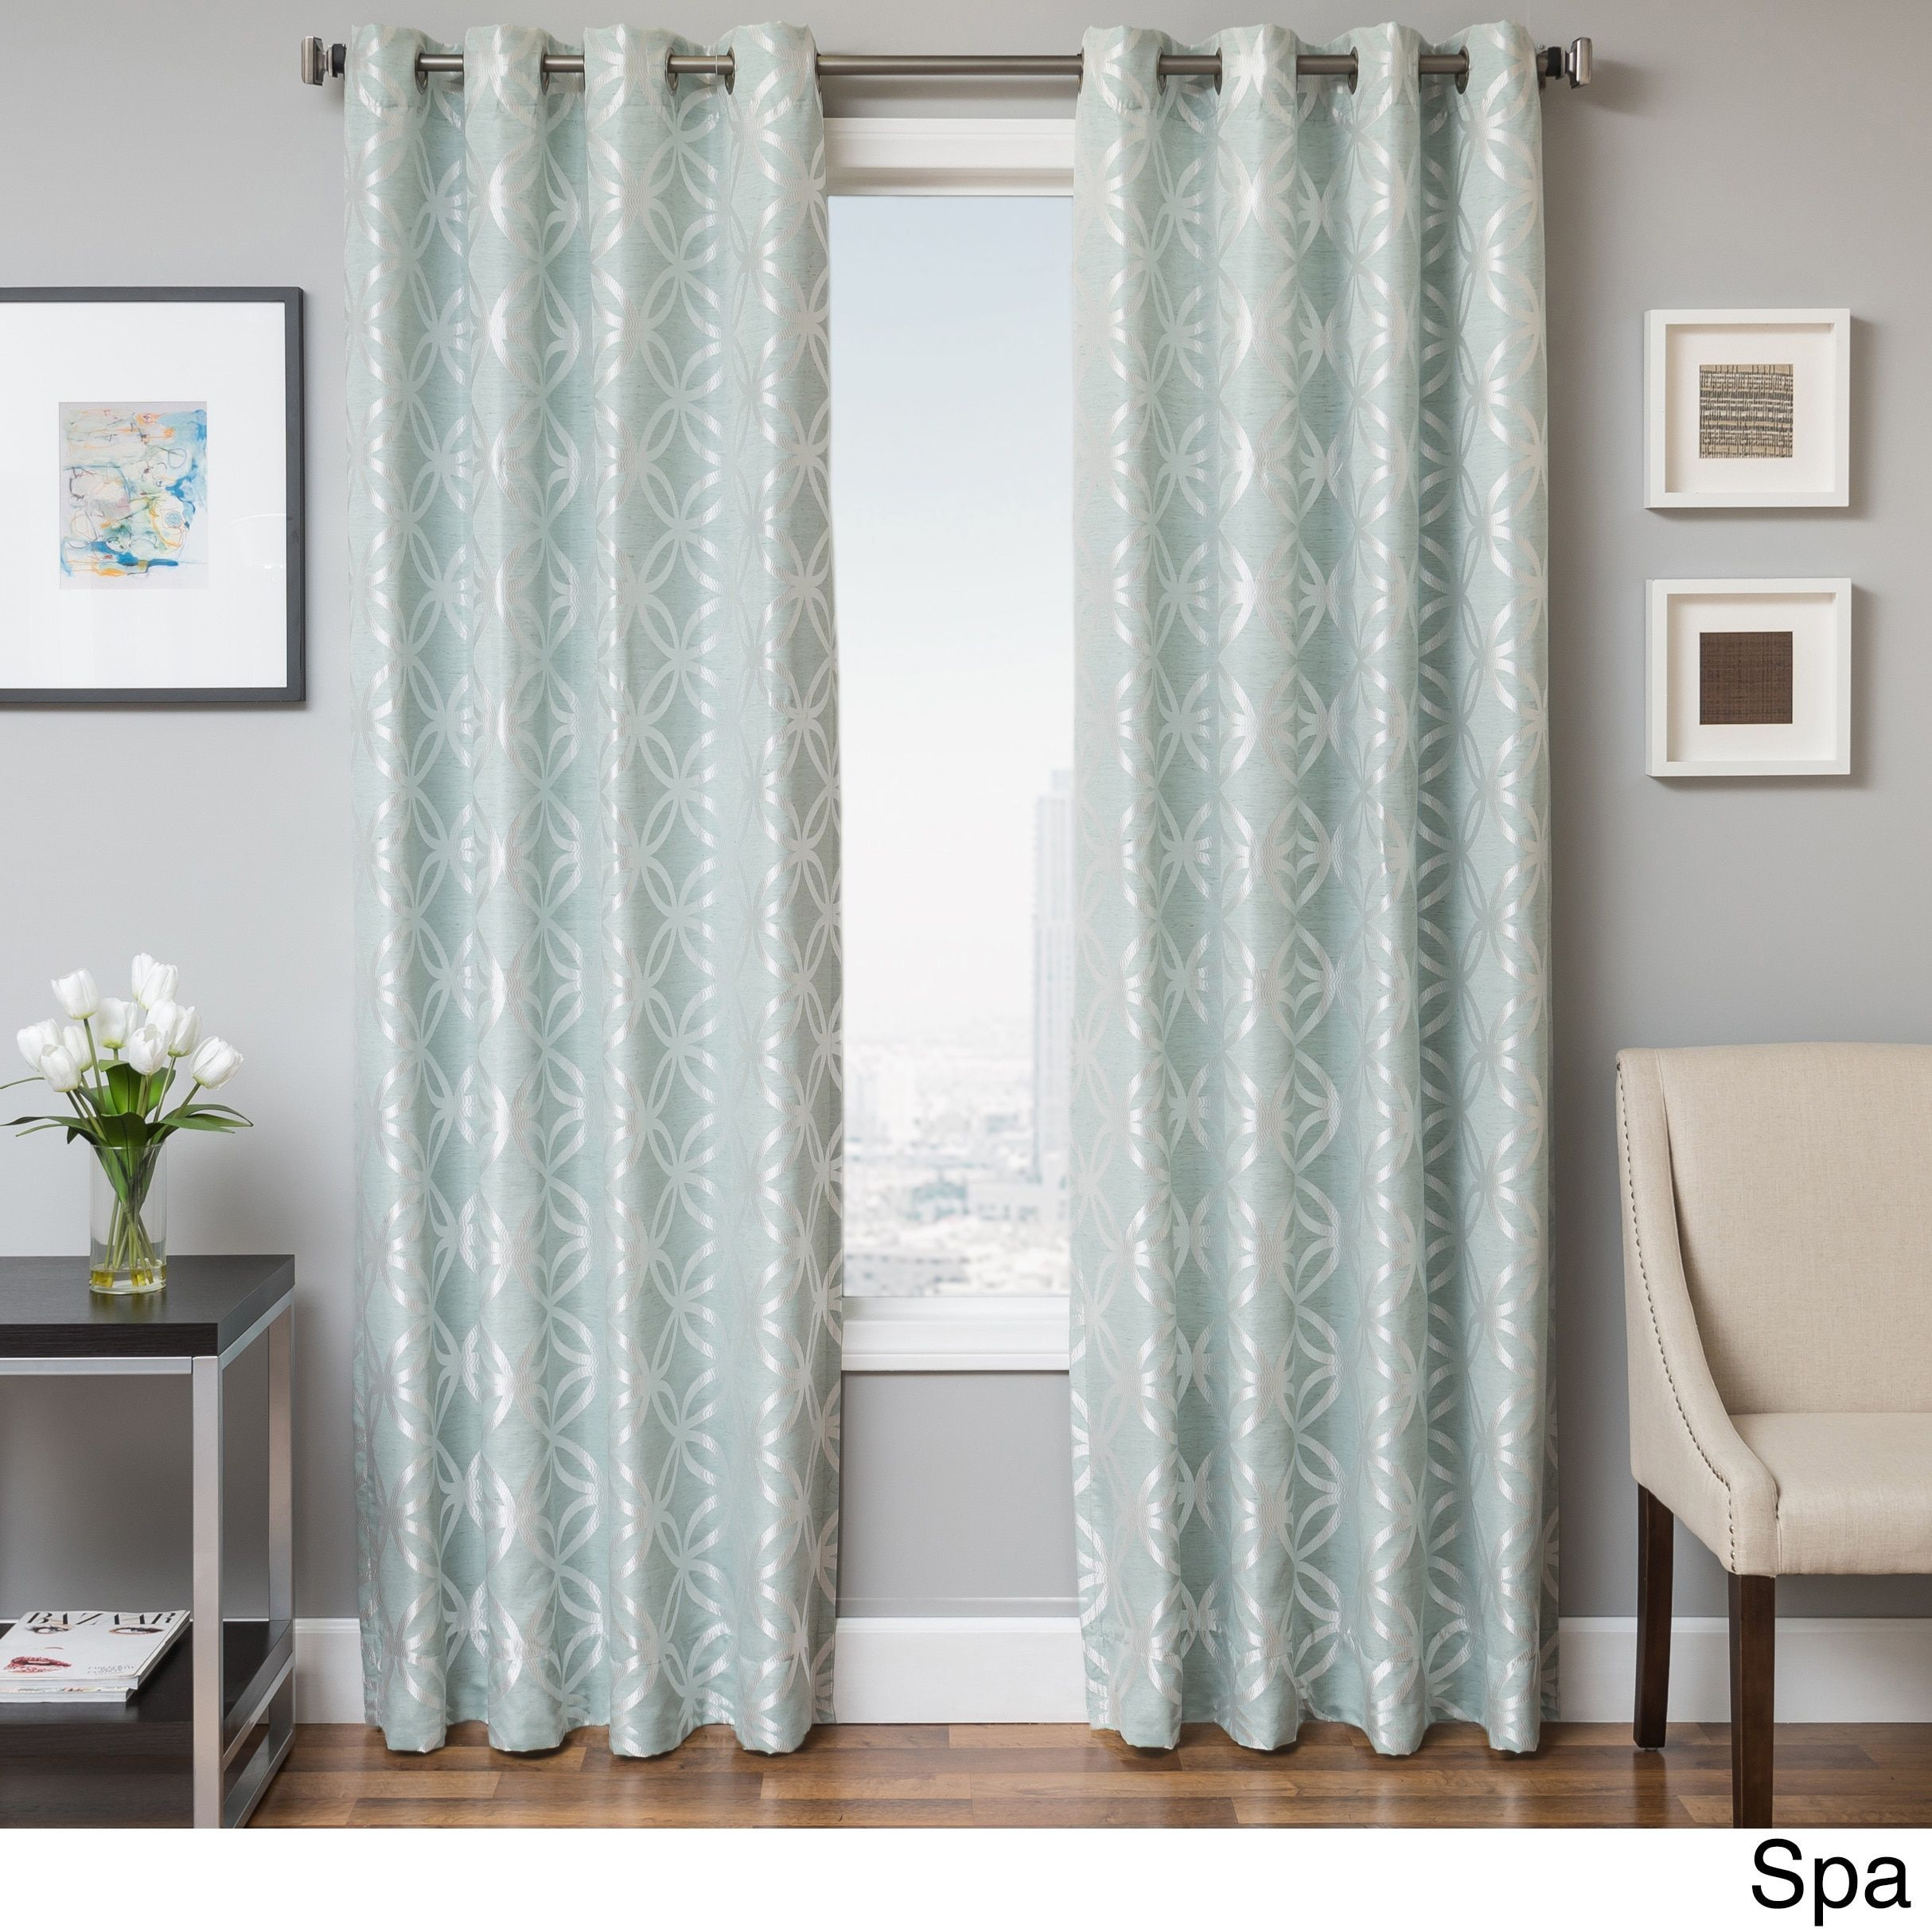 Softline Paxton Geometric Grommet Top Curtain Panel (84 Spa), Blue,